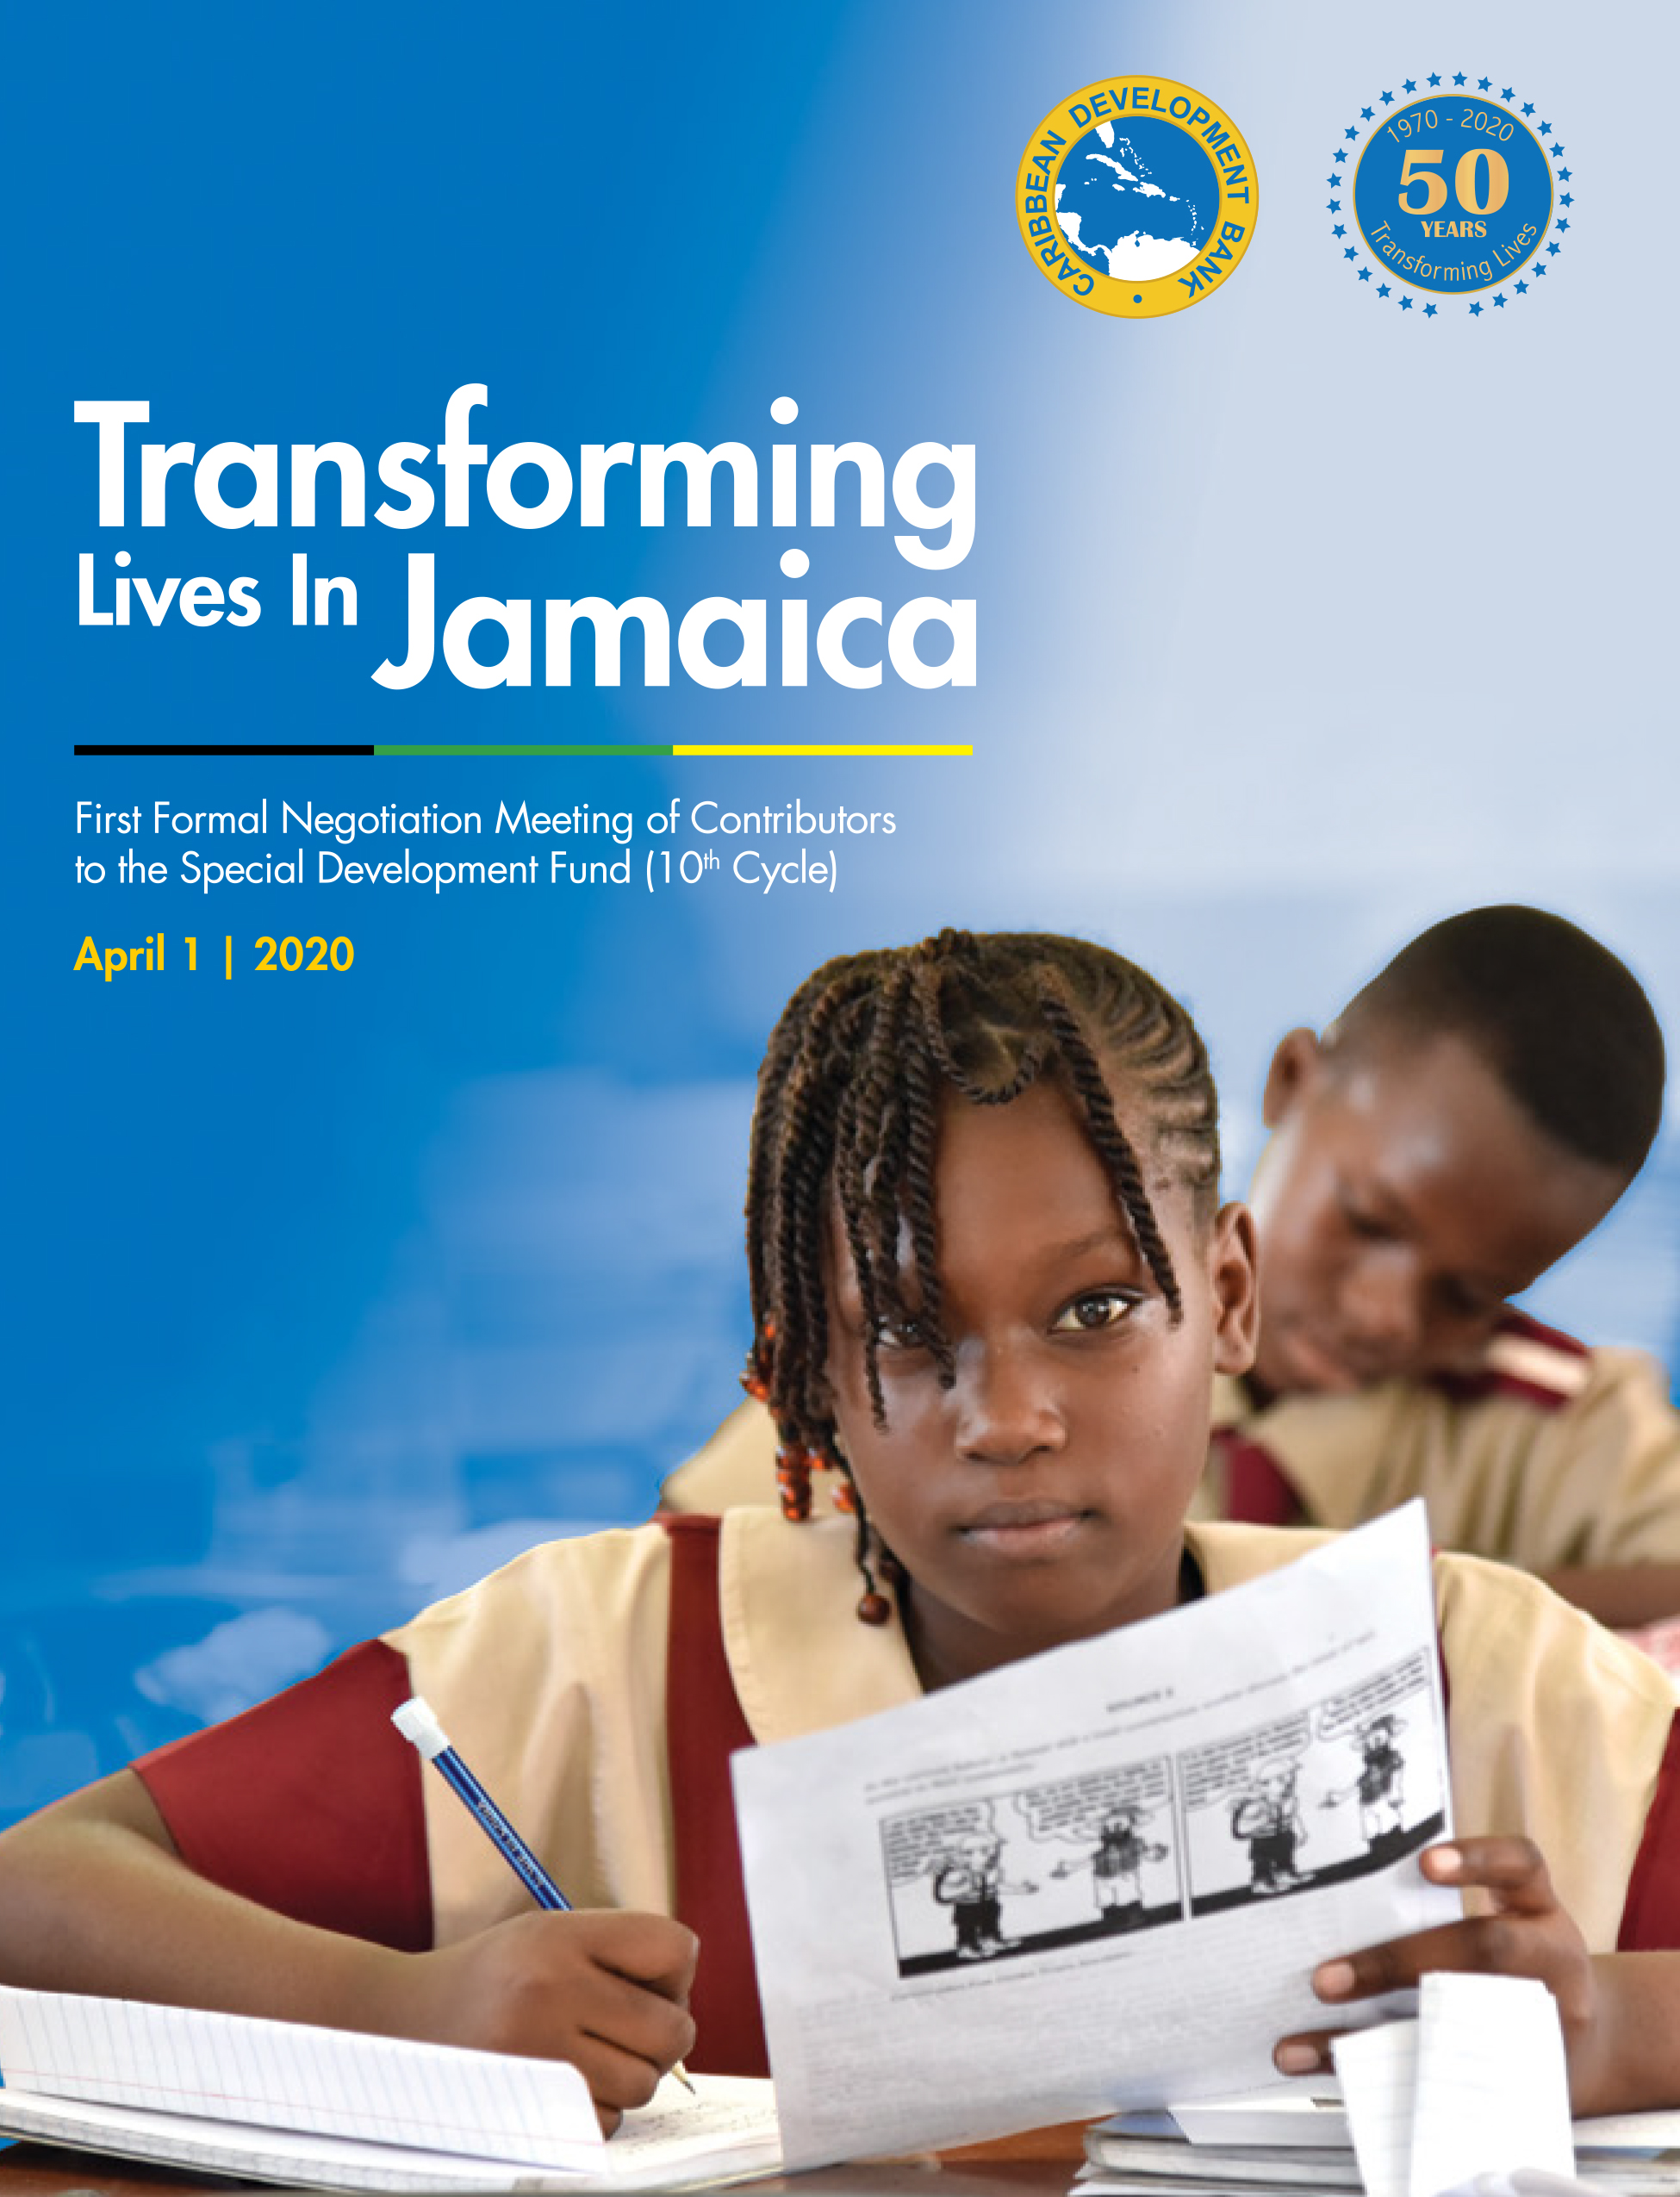 The booklet (mobile-friendly for offline reading) provides an overview on CDB Special Development Fund (SDF), the situation in Jamaica, and six stories on projects, implemented by the Basic Needs Trust Fund (BNTF), a programme of the SDF, between 2013 and 2019 in Jamaica.  